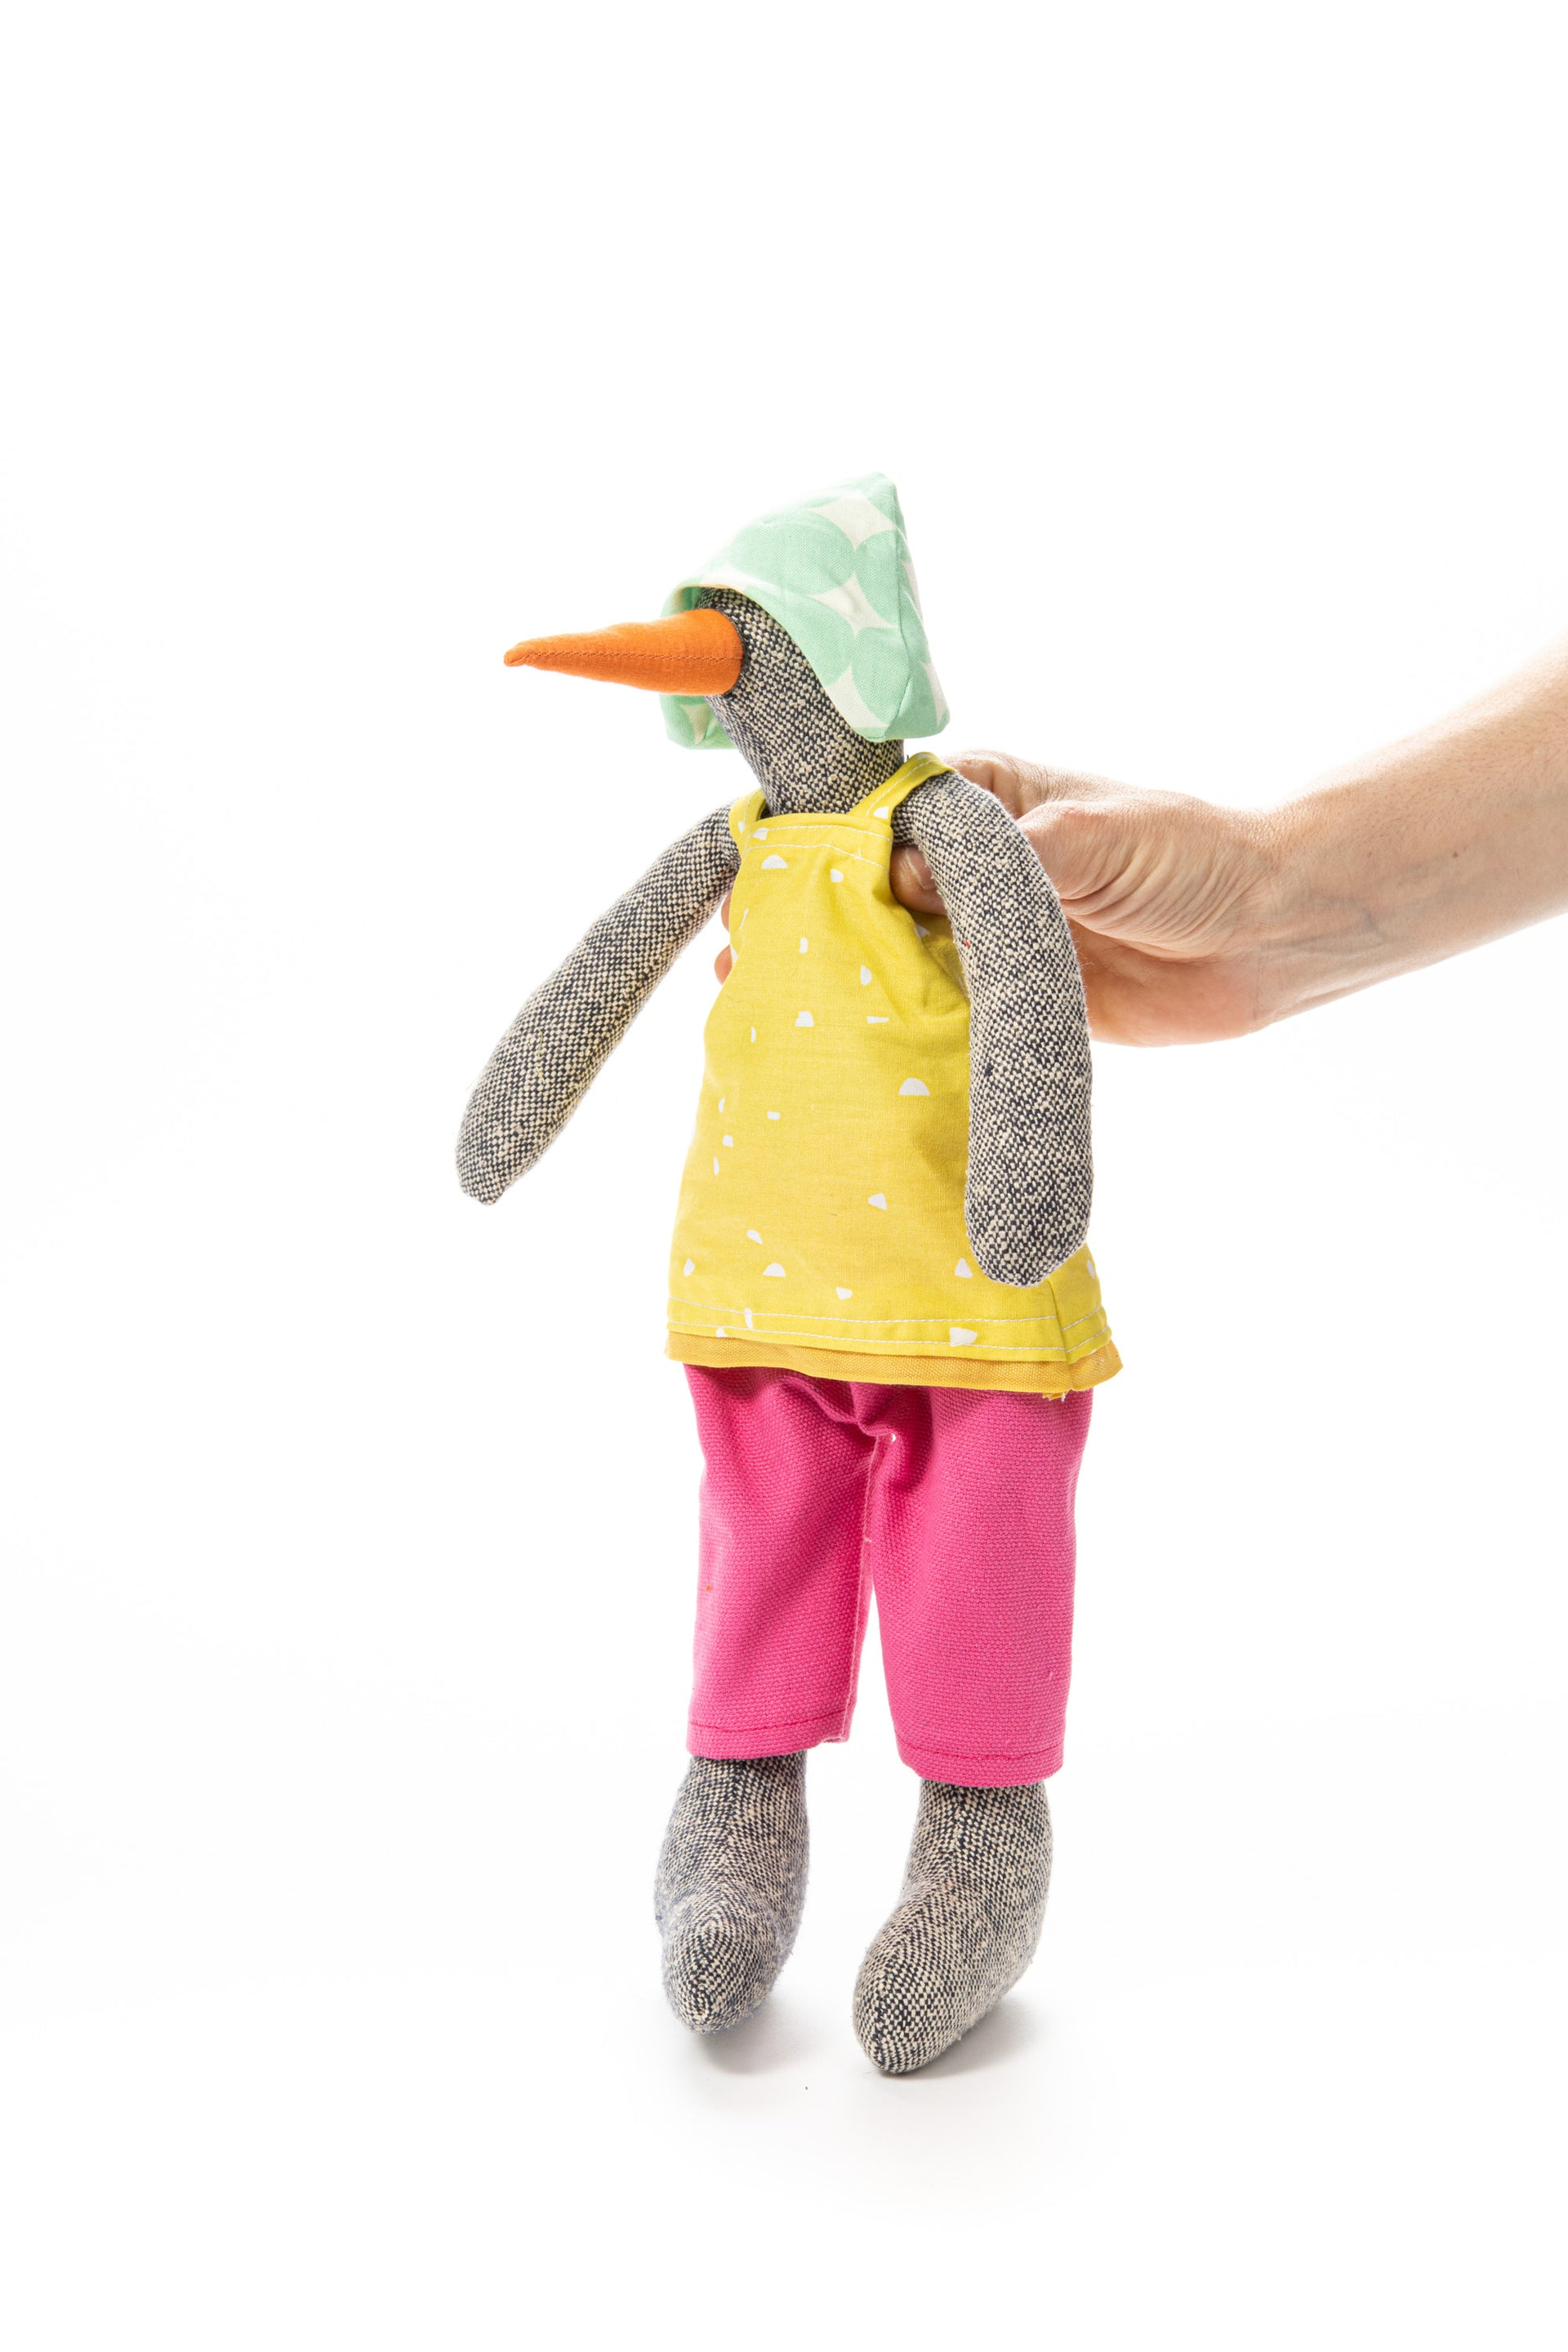 Dolls set for kids, Set of 2 dolls, Twins gift, Baby shower gift , Bird doll, Fabric doll, Handmade doll, Eco friendly gift, Rag dolls, Duck